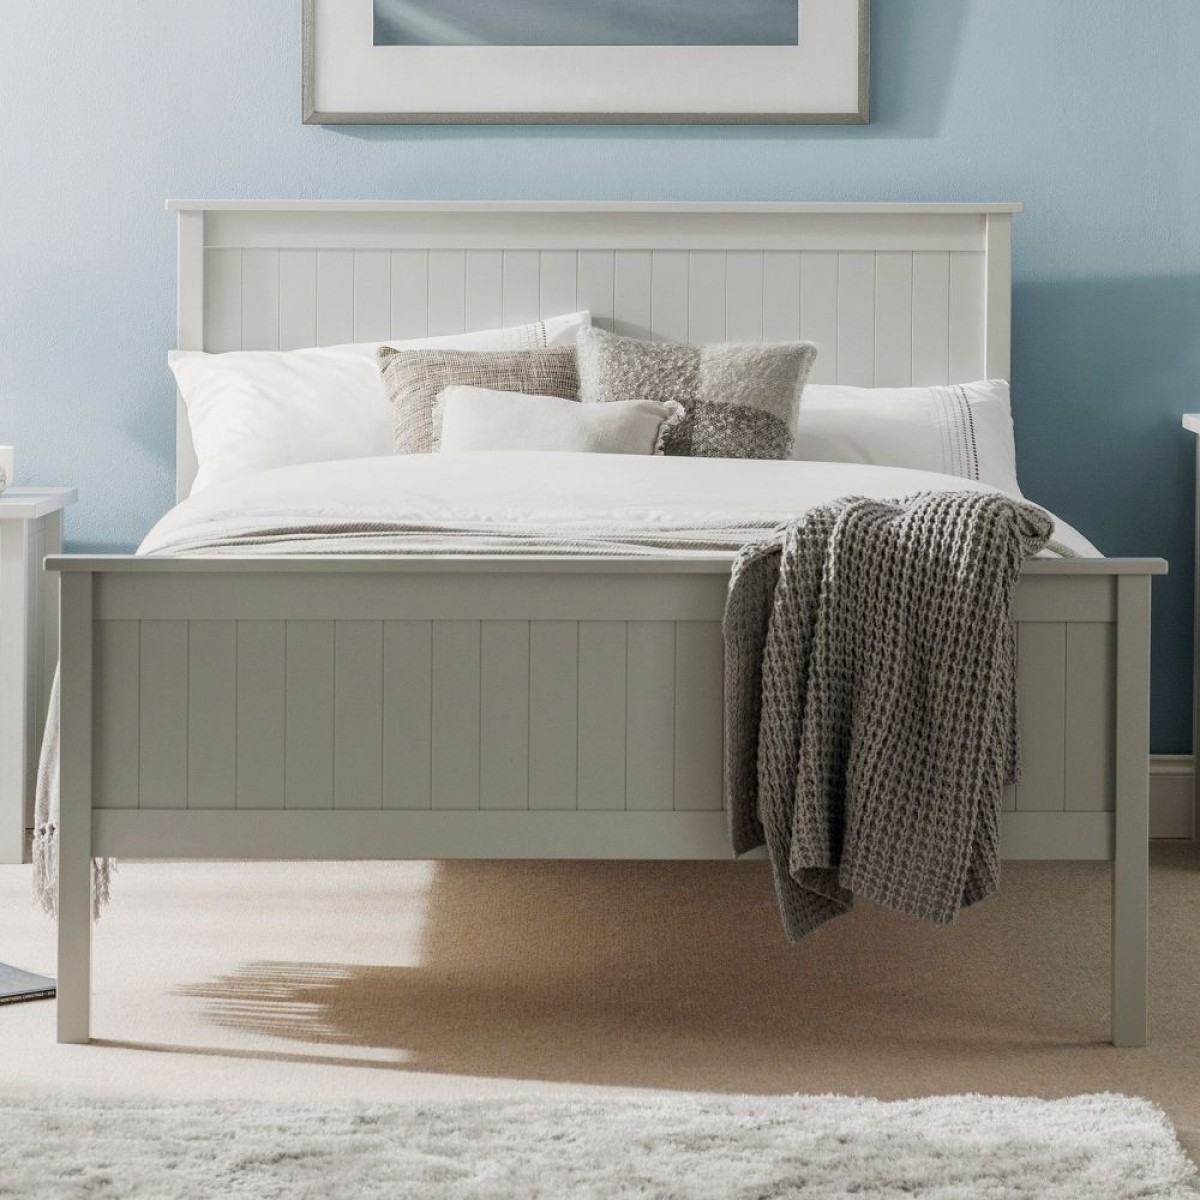 Maine Dove Grey Wooden Bed